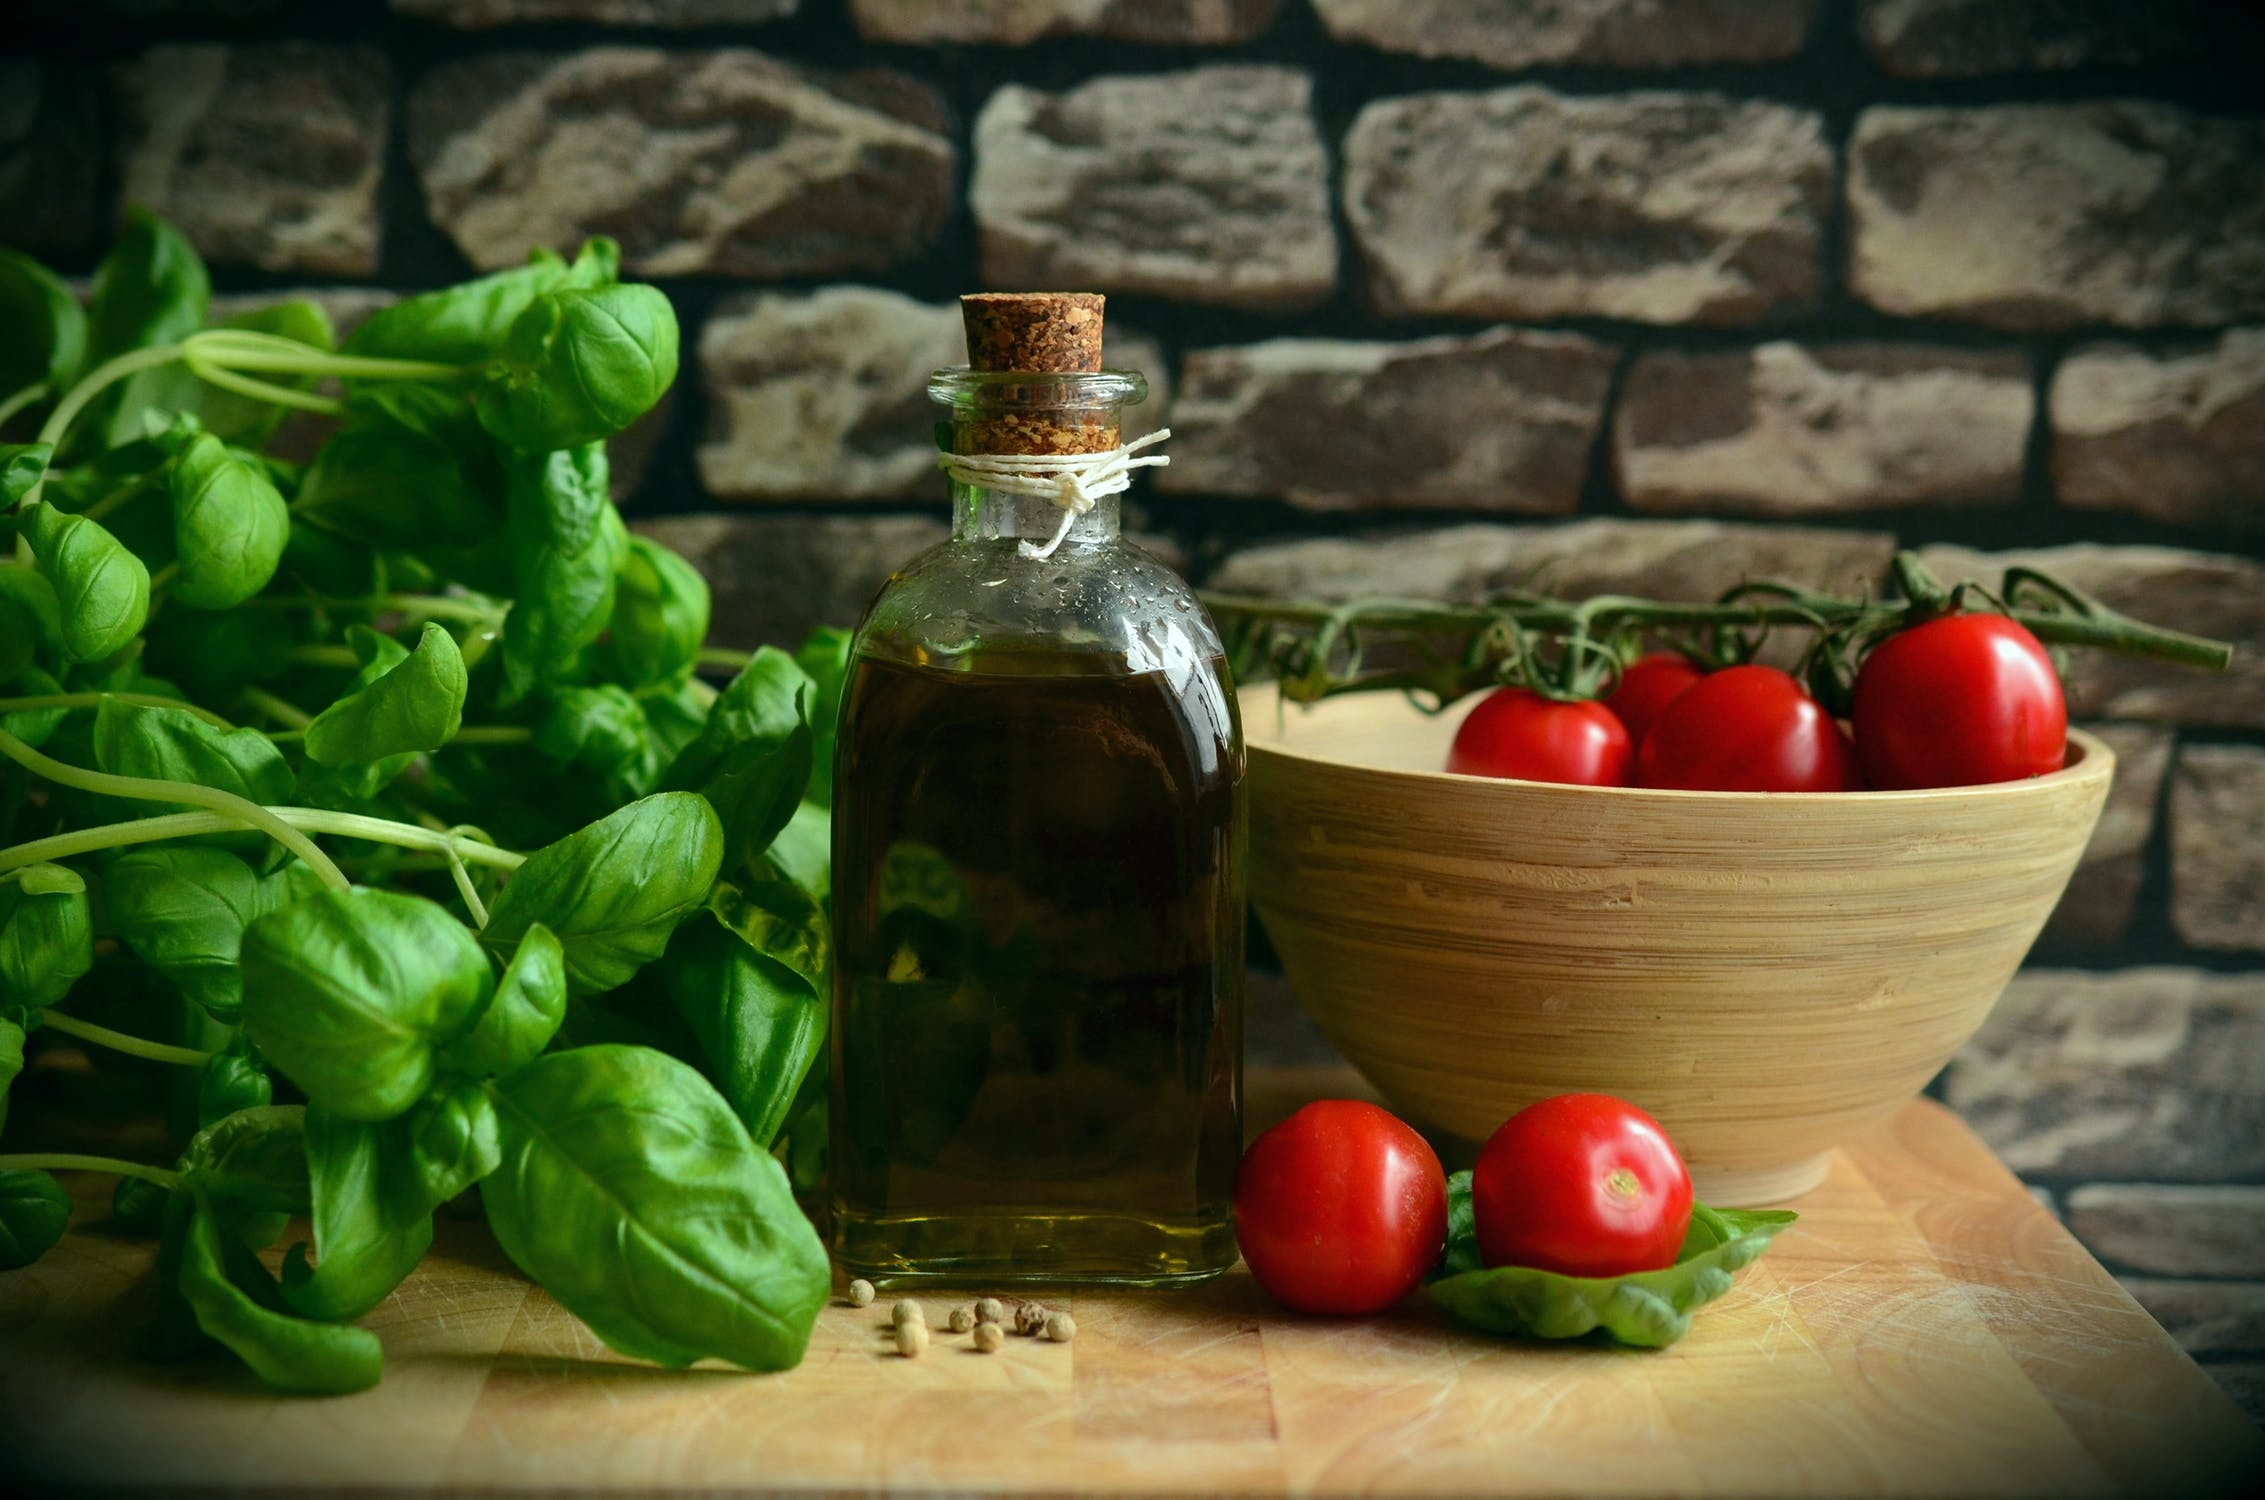 This is a great way to use garden tomatoes and basil. You'll never want to go back to the canned stuff after you try this!